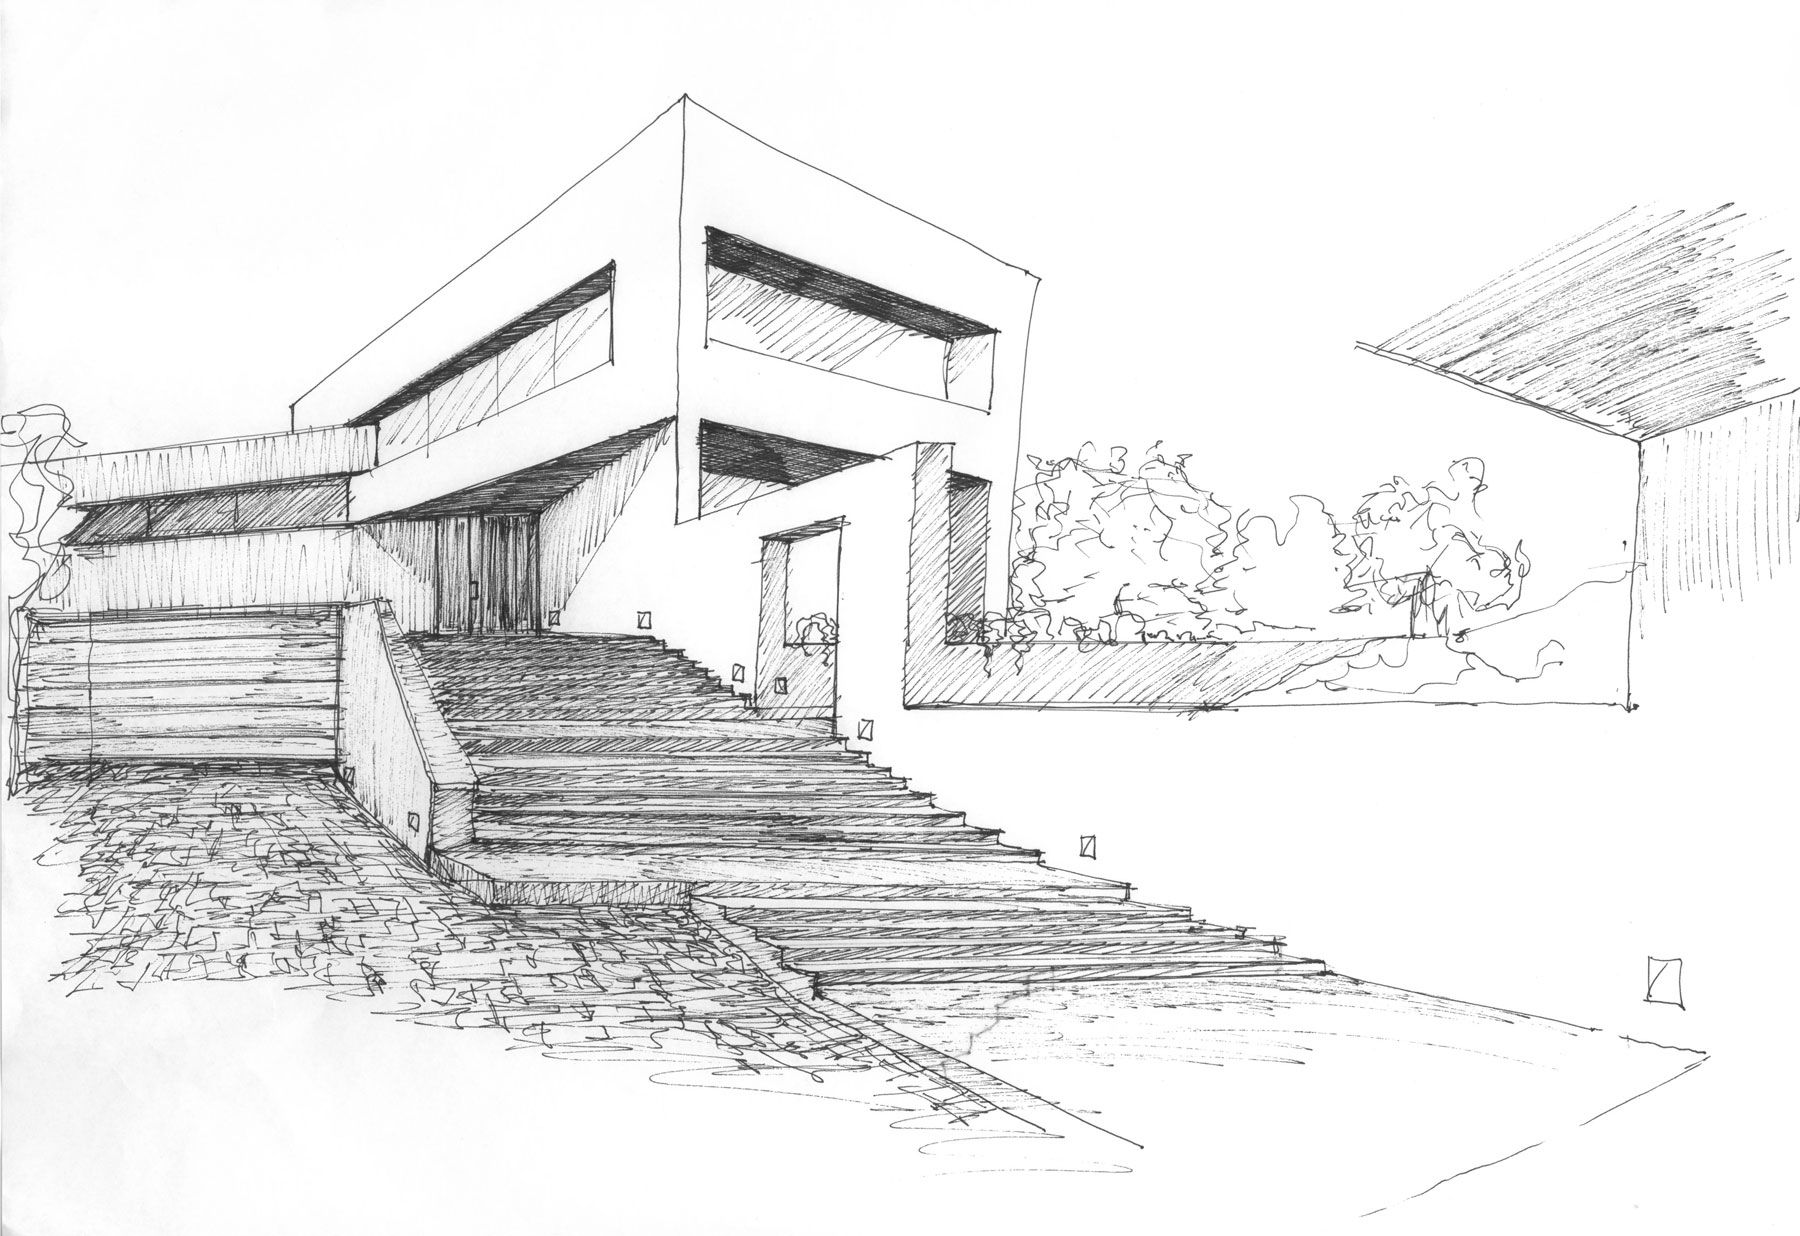 Valdemorillo residence modern architecture sketches for Architectural drawings of houses